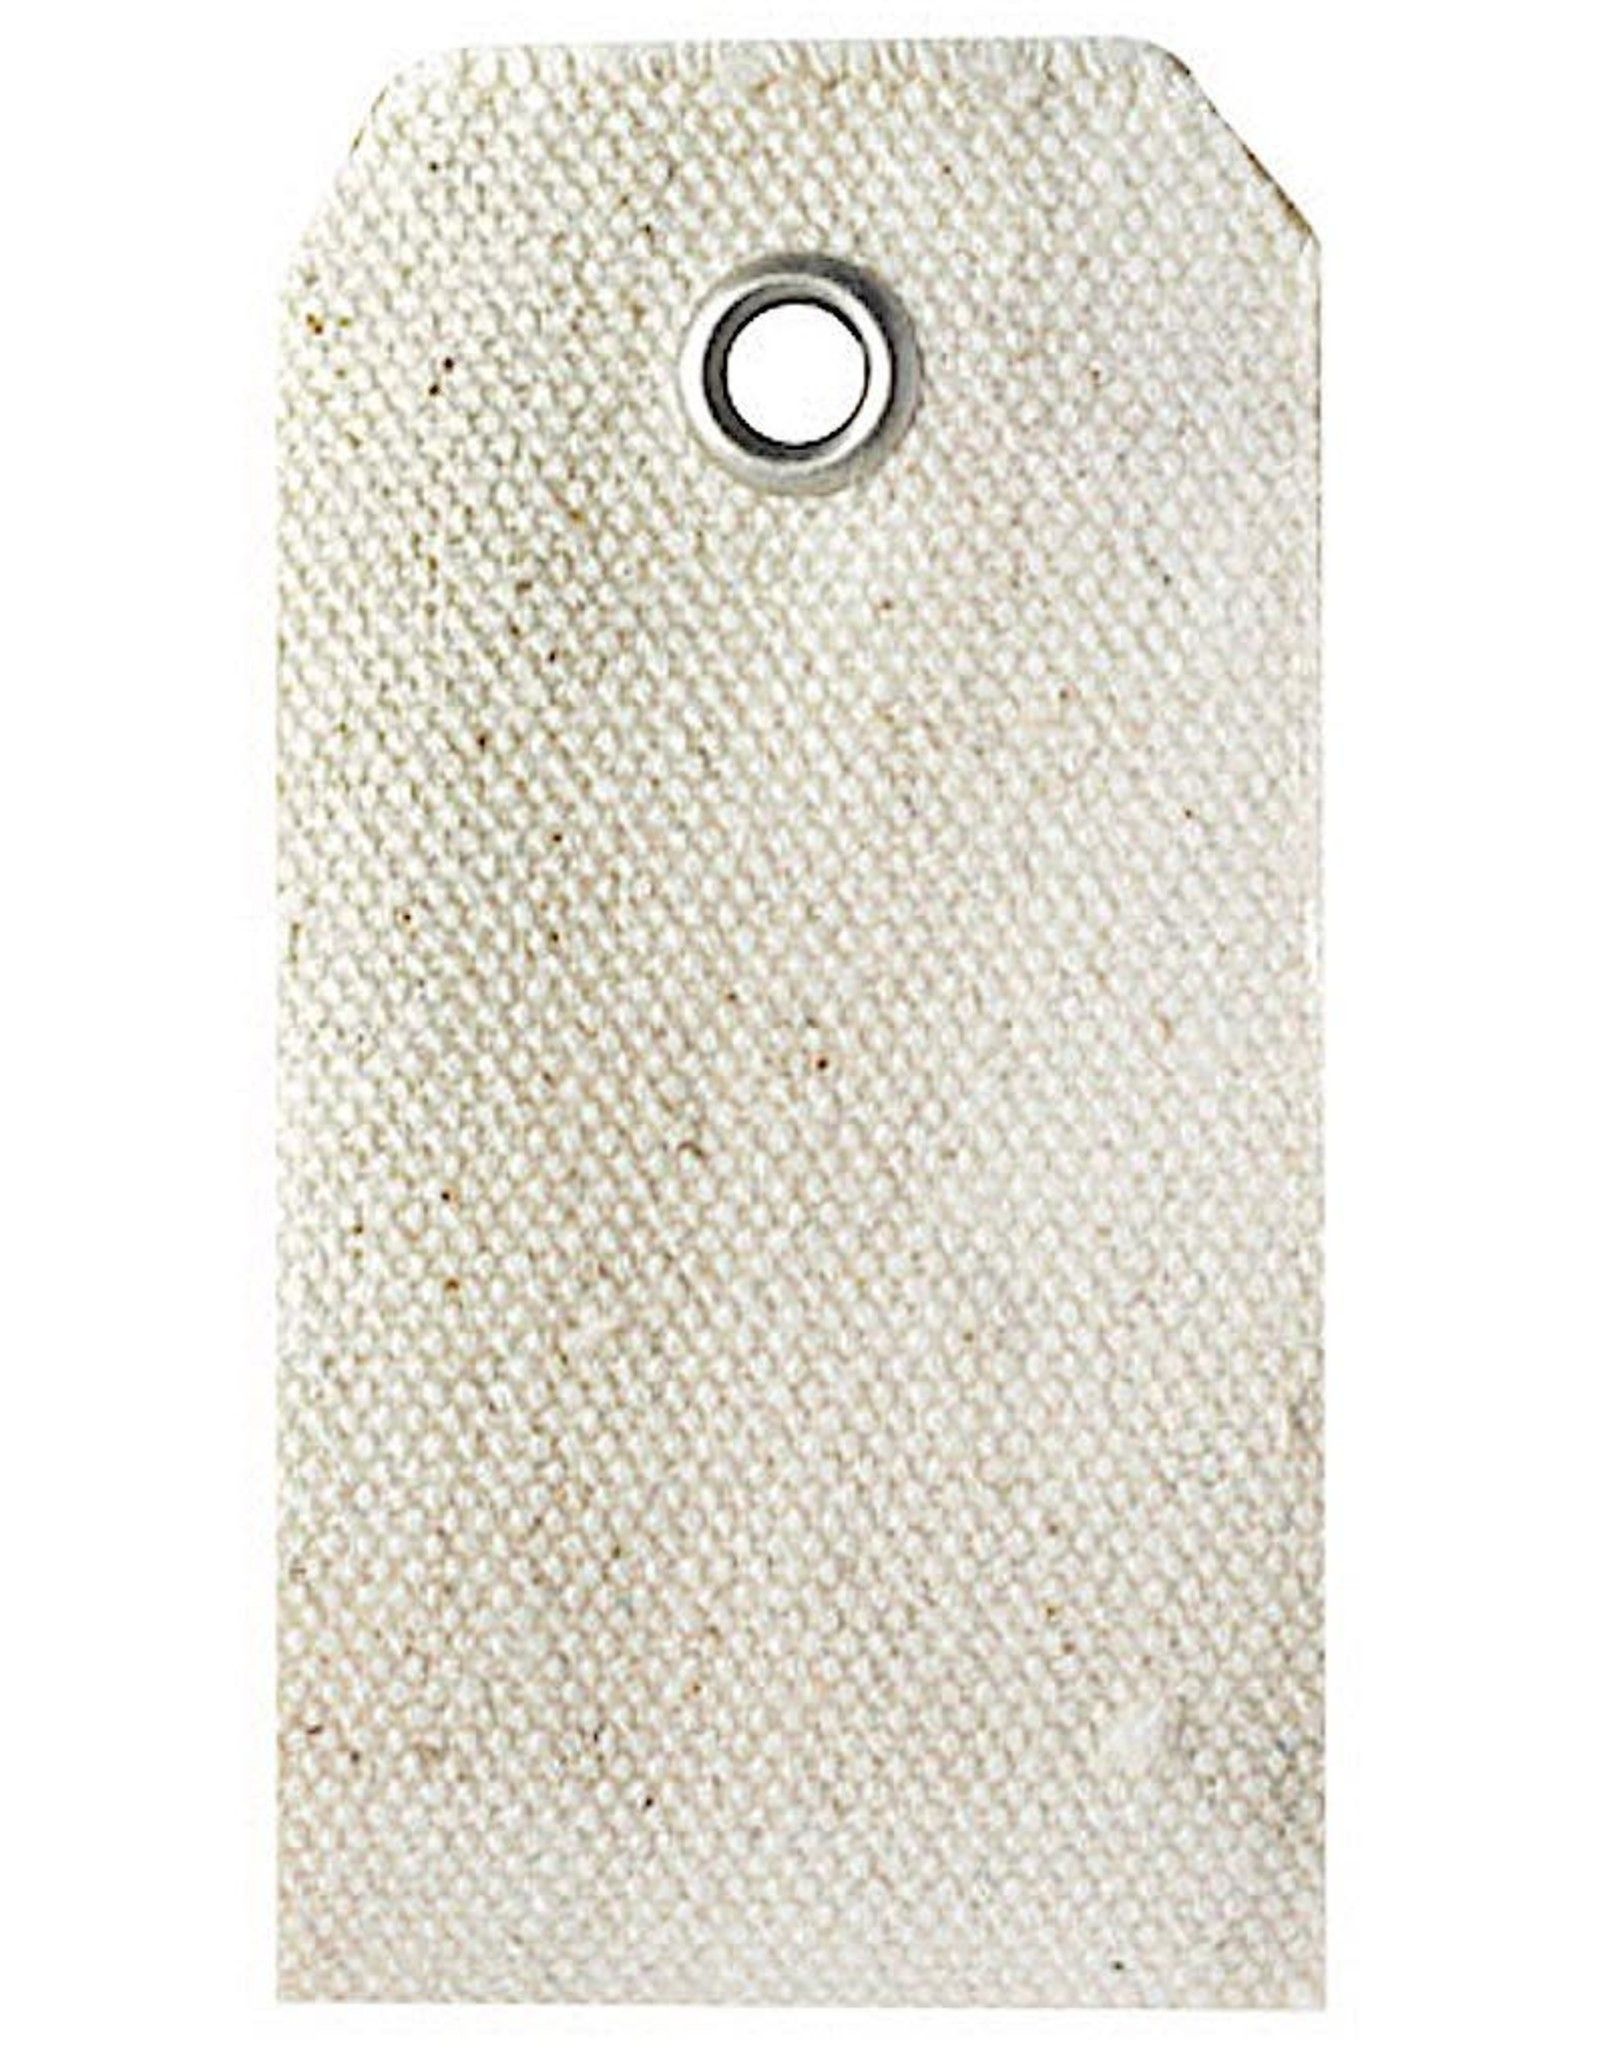 Darice Cotton Canvas Rectangle Tags 1.8x2.75 Inch 15 Pack Natural